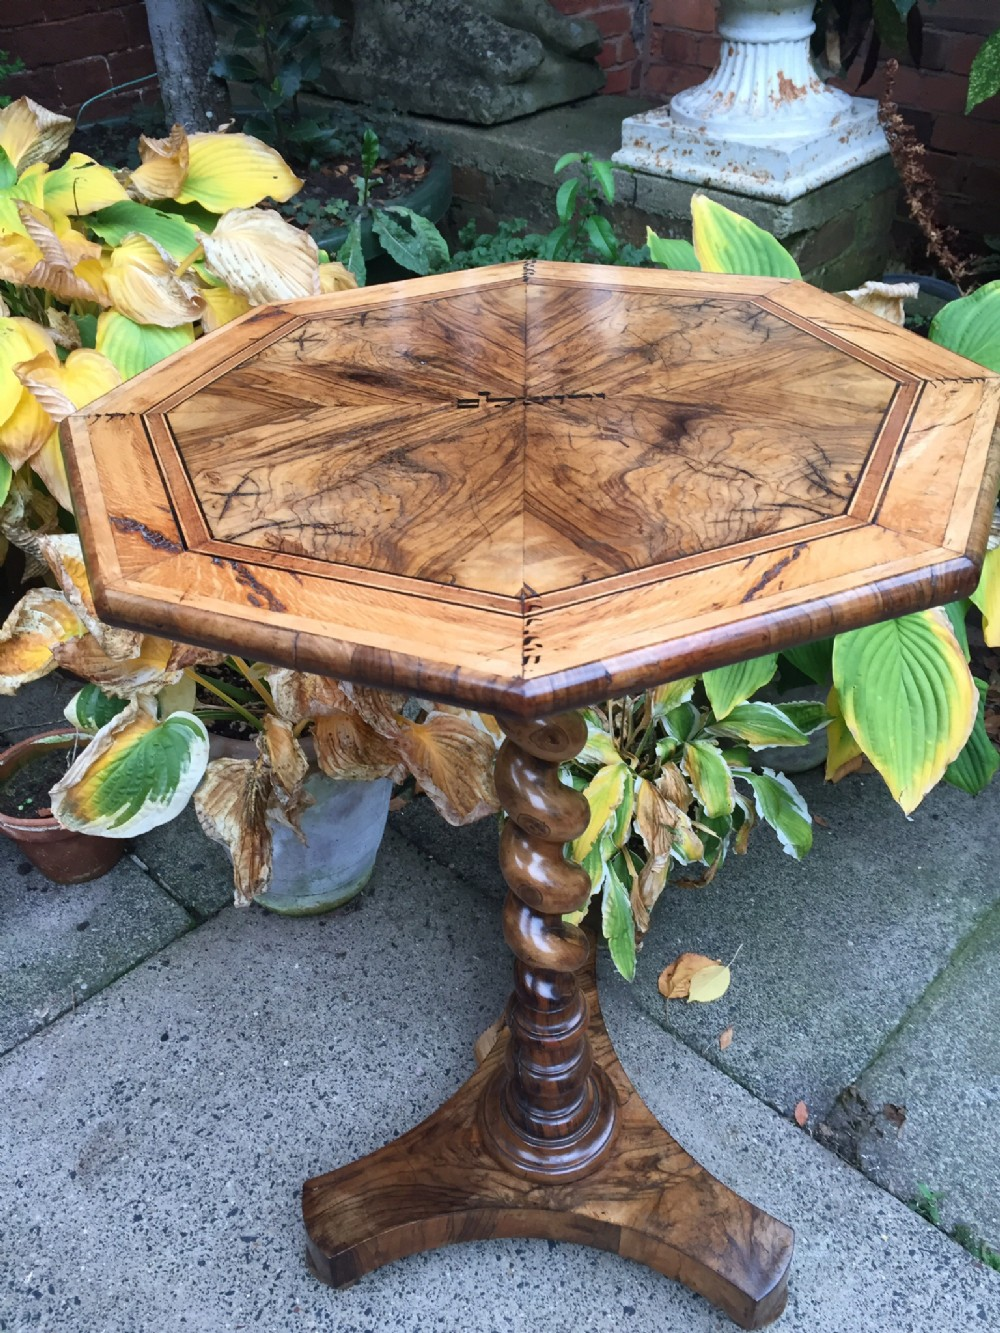 rare c19th olivewood pedestal table from the holy land with hebrew ink inscriptions